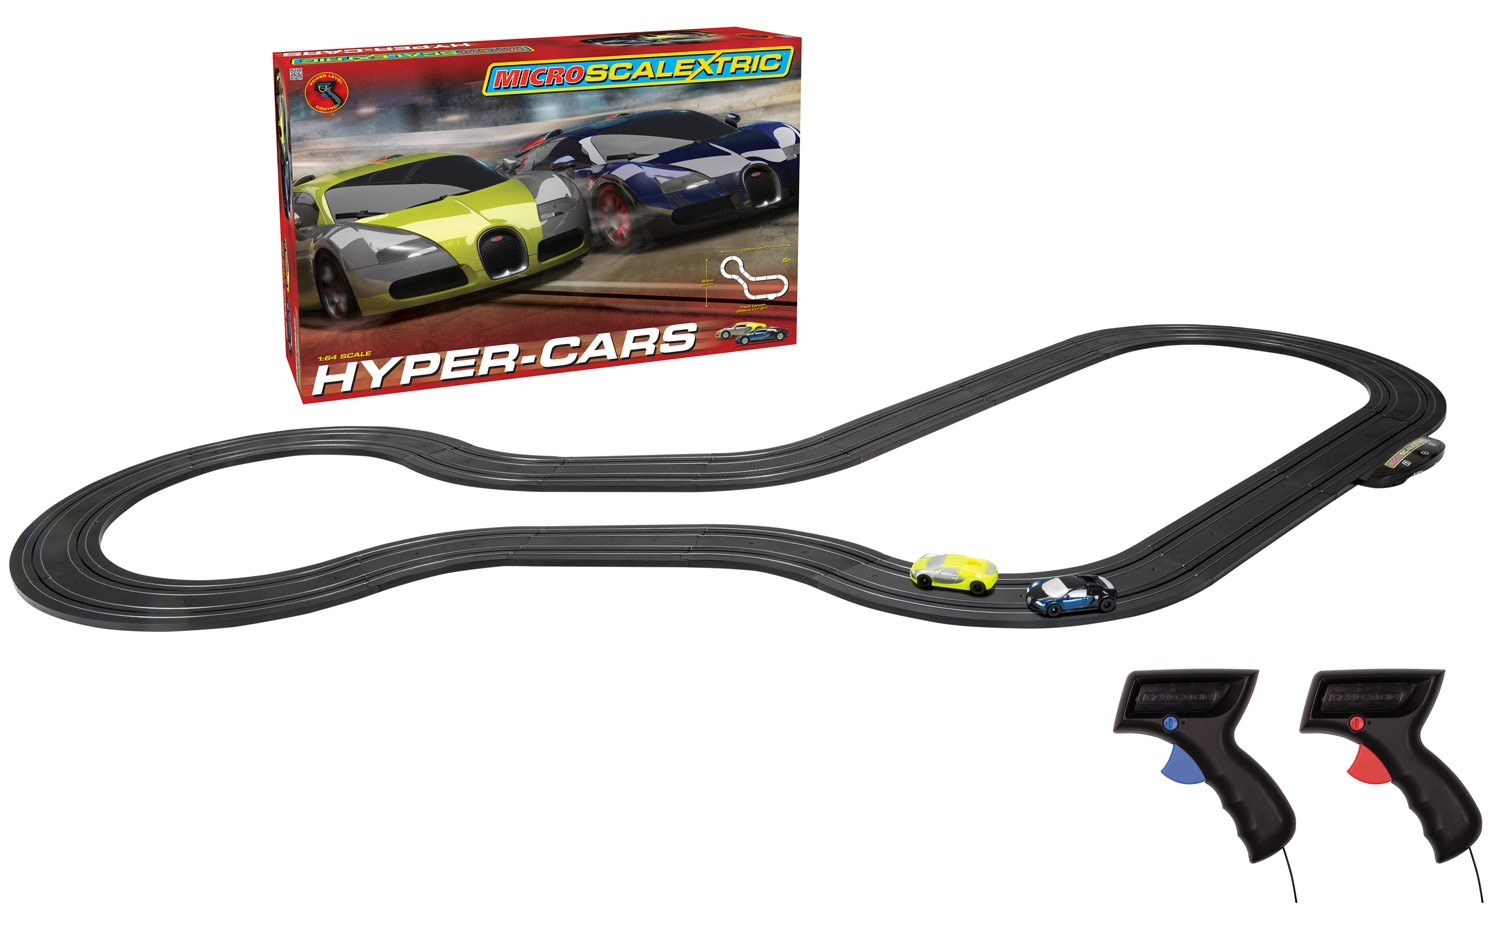 No.G1108T MICRO SCALEXTRIC HYPER-CARS SET